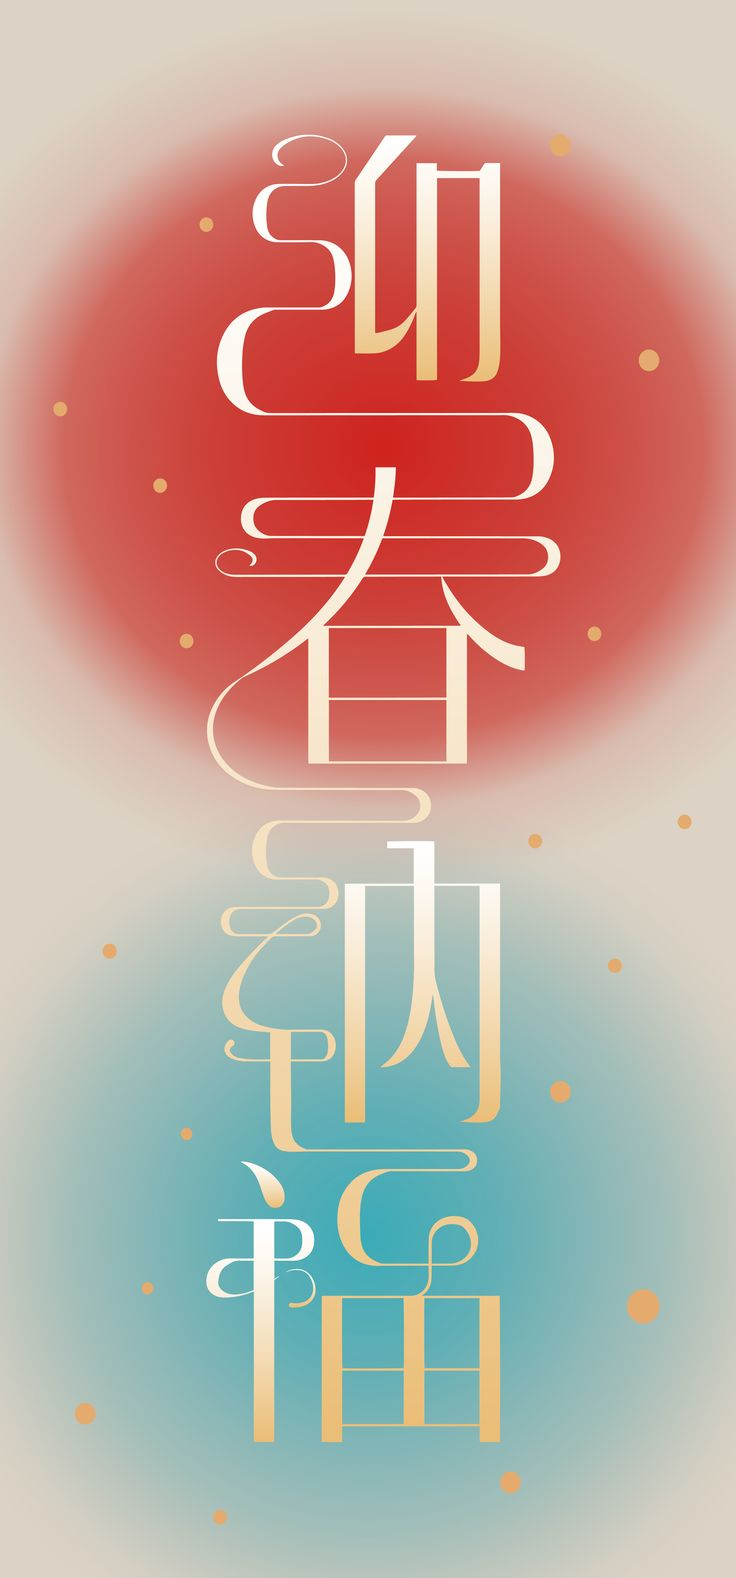 Happy Chinese (Lunar) New Year; Joyeux Nouvel An chinois; Feliz Año Nuevo Chino; Buon Capodanno cinese; 新年快乐